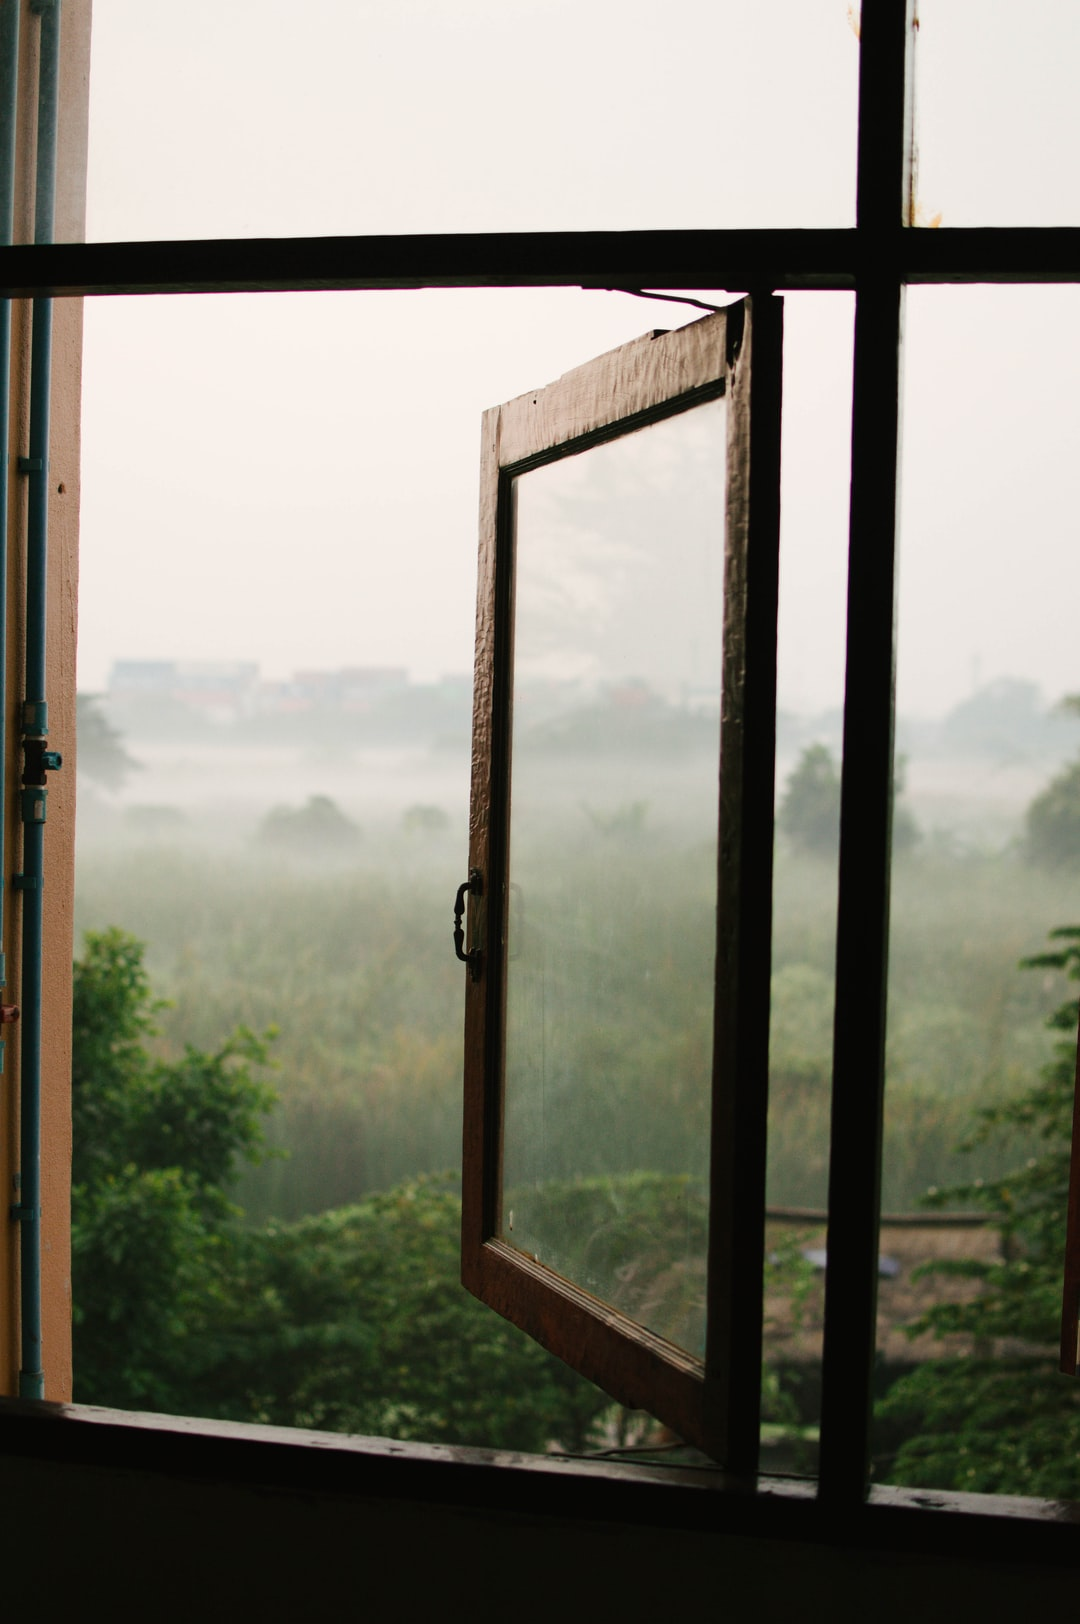 Despite being in Bangkok, outside my apartment window was a small field. The morning fog covered it beautifully each day.